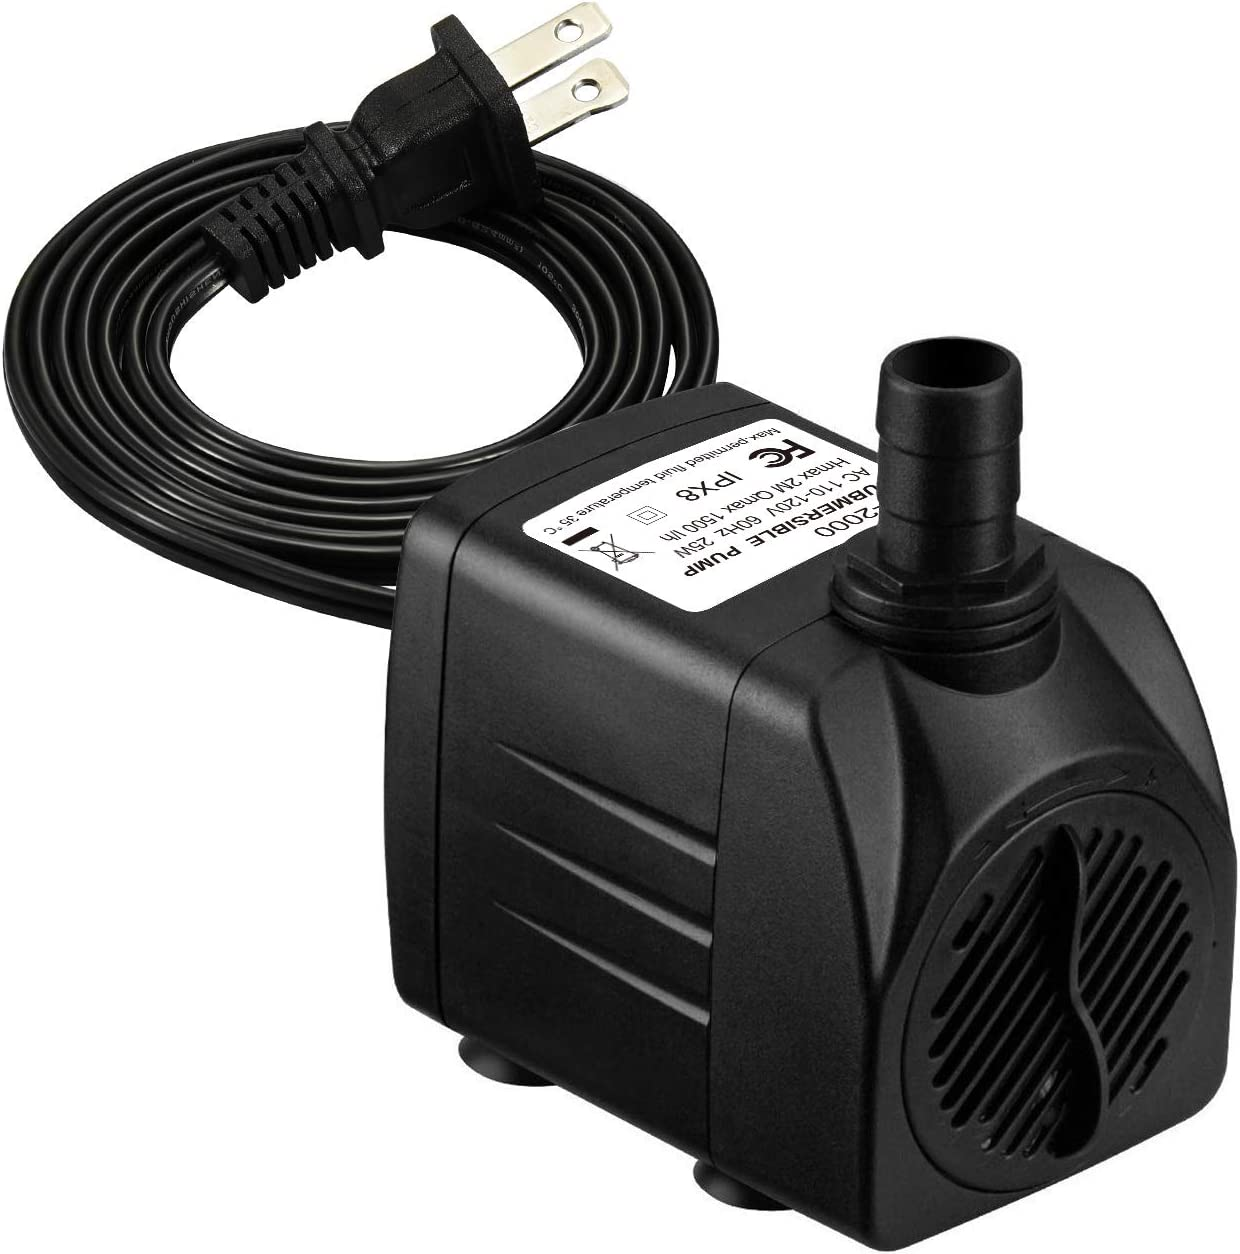 Homasy Upgraded 400GPH Submersible Water Pump with 36 Hours Dry Burning, 25W Fountain Water Pump with 5.6ft Power Cord for Aquarium, Pond, Fish Tank, Water Pump Hydroponics